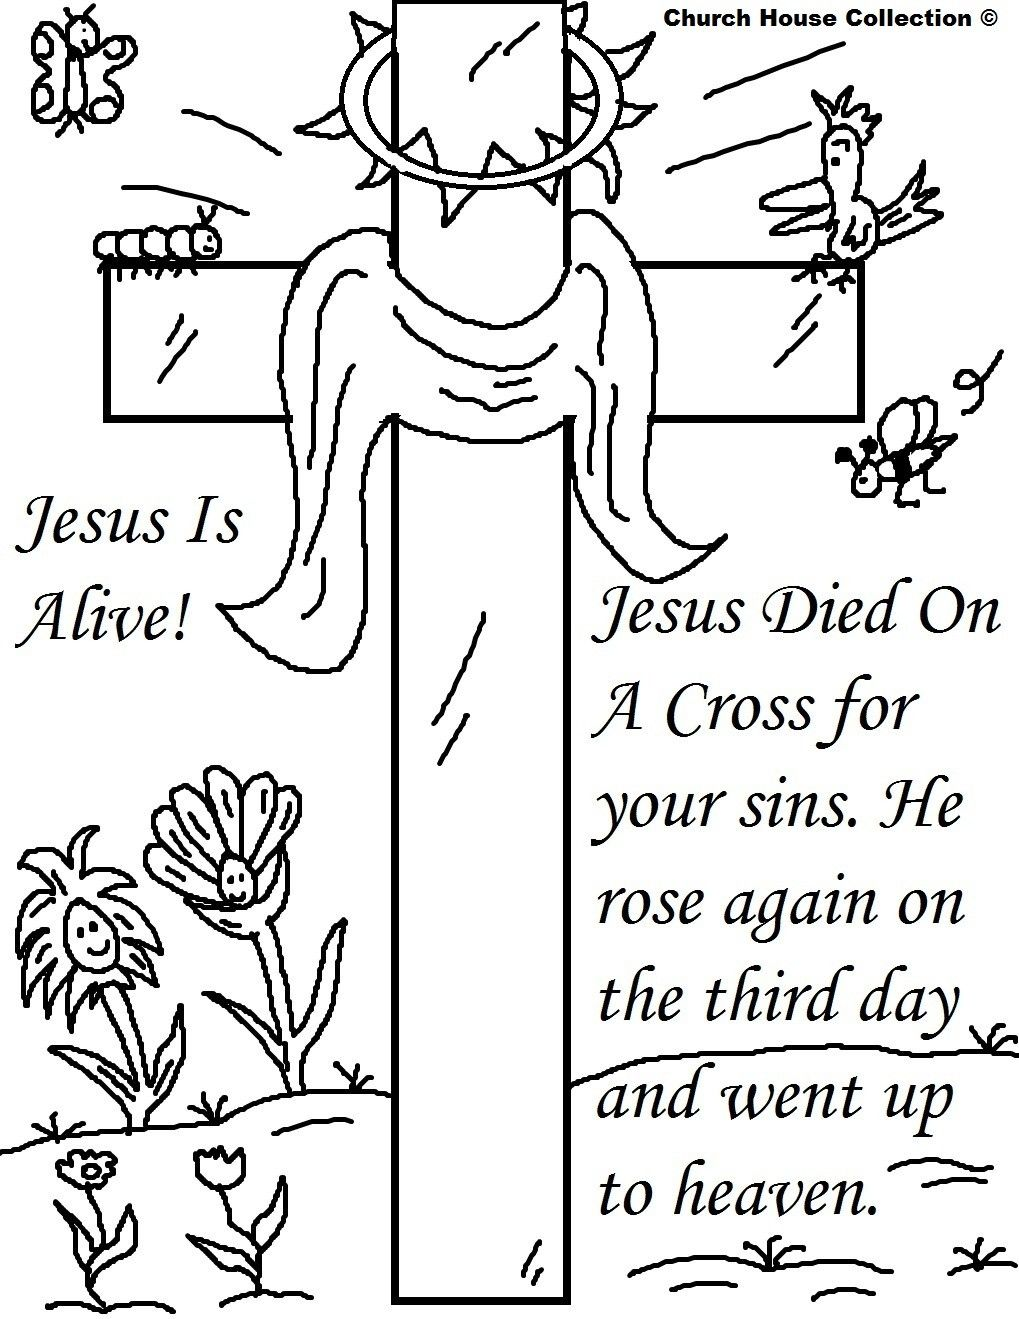 Childrens christian valentine coloring pages - Here Is A Roundup Of Religious Easter Coloring Pages They Re Completely Free Just Print And Have A Special Craft Time With Your Kids During Easter